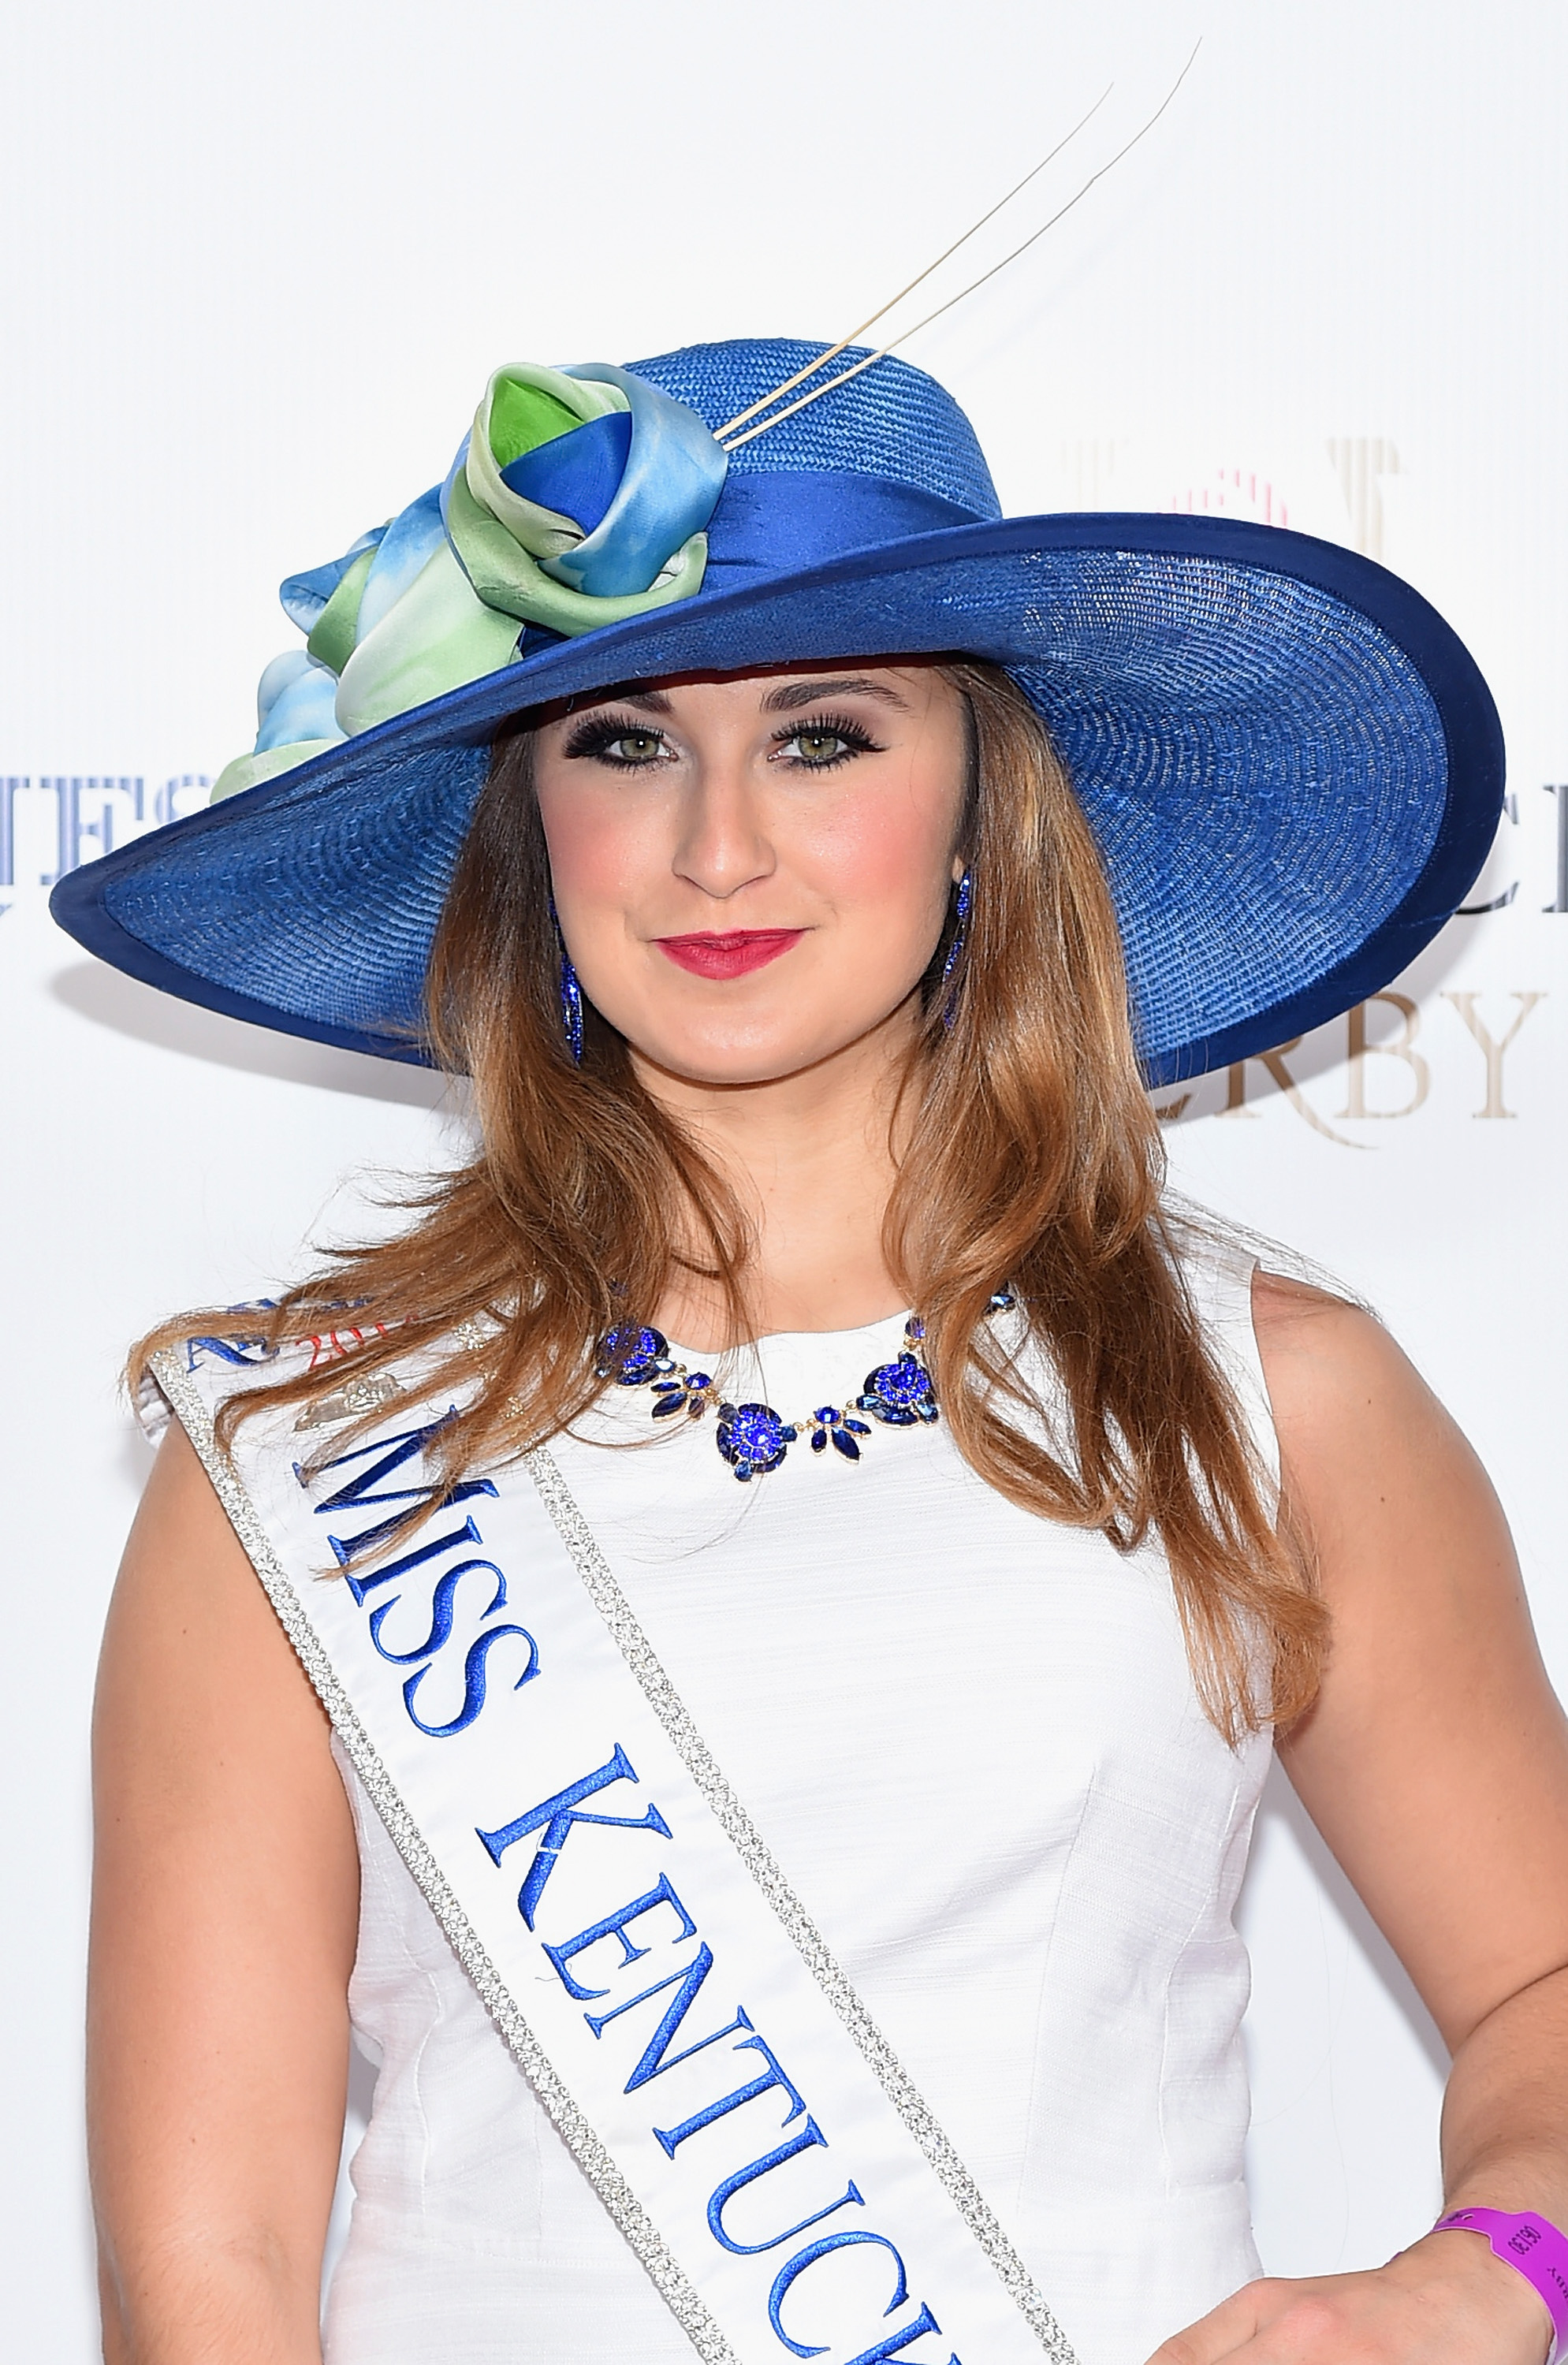 Former Miss Kentucky charged with sending obscene photos